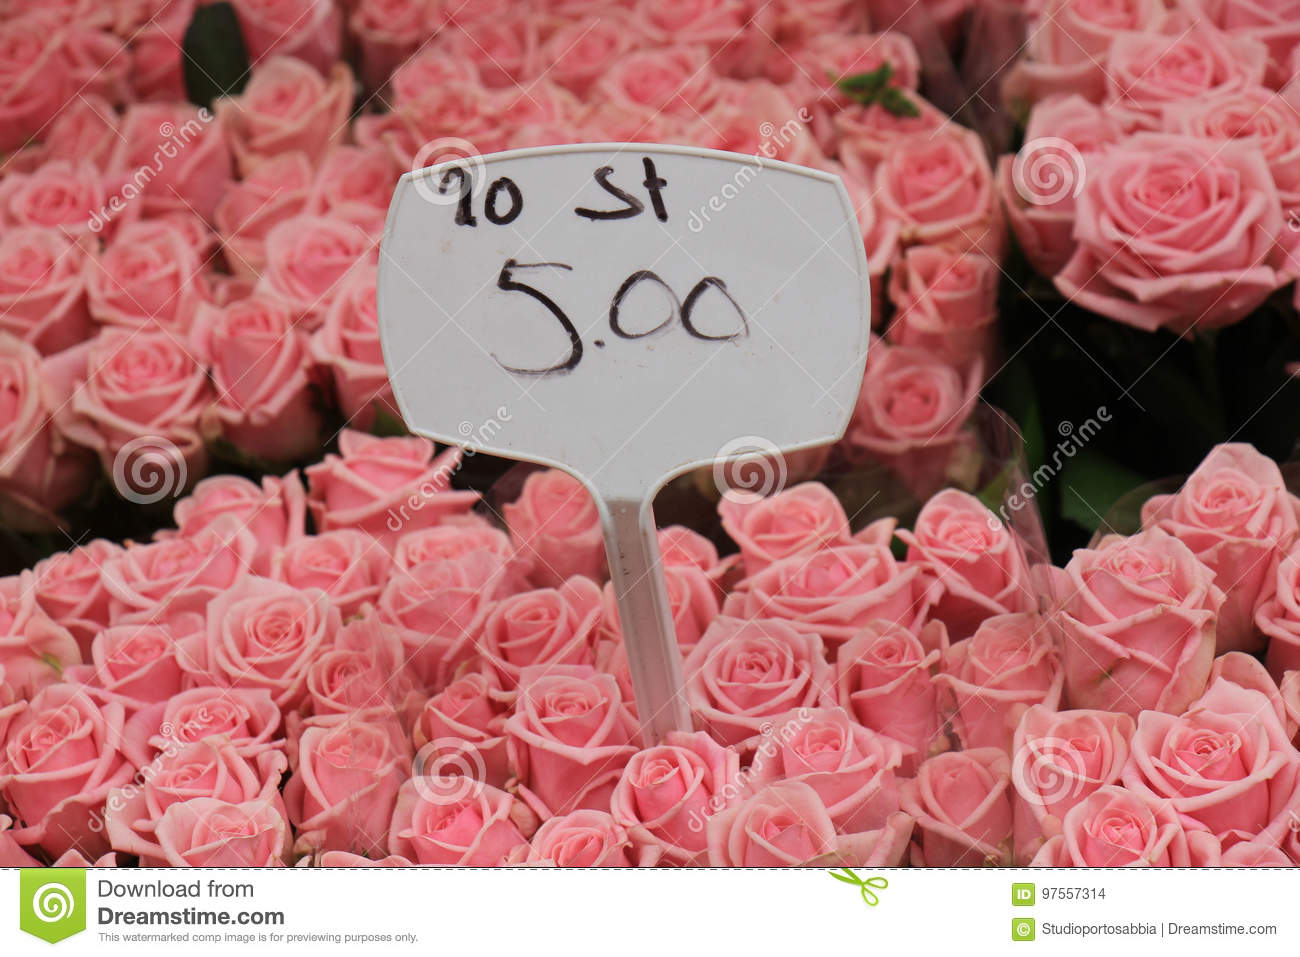 Flowers At A Flower Market Stock Photo Image Of White 97557314